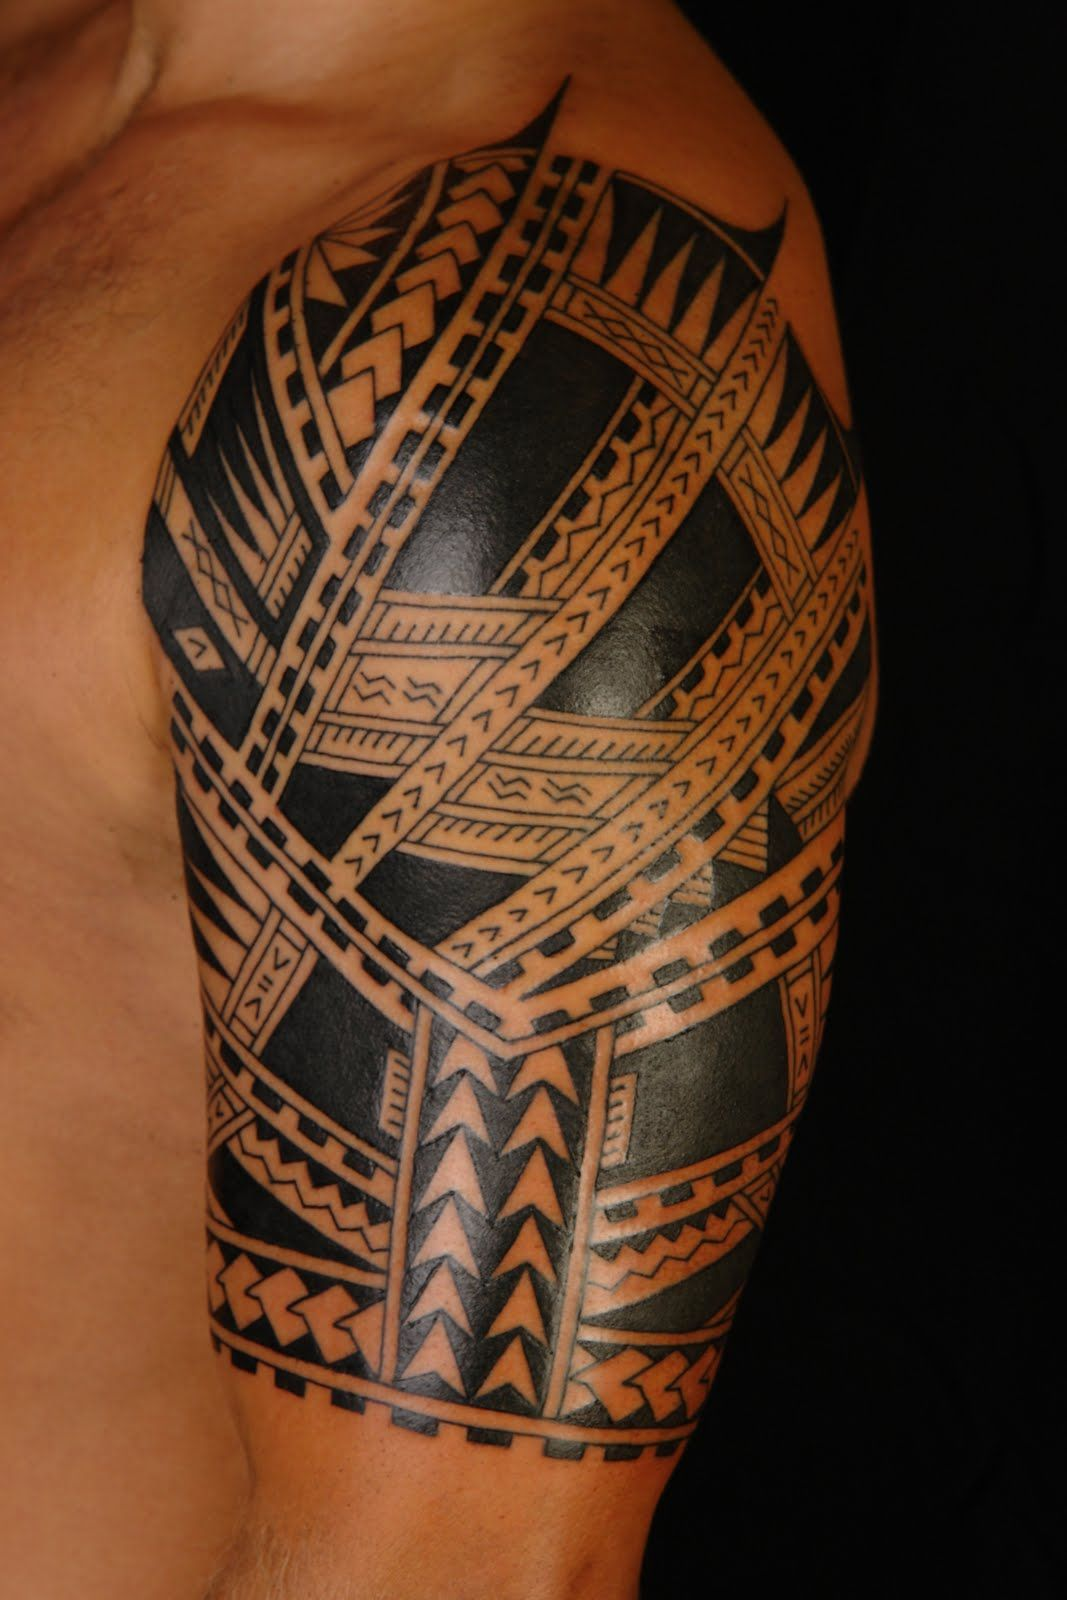 maori tattoos polynesian tattoos pinterest maori tattoo and maori tattoos. Black Bedroom Furniture Sets. Home Design Ideas